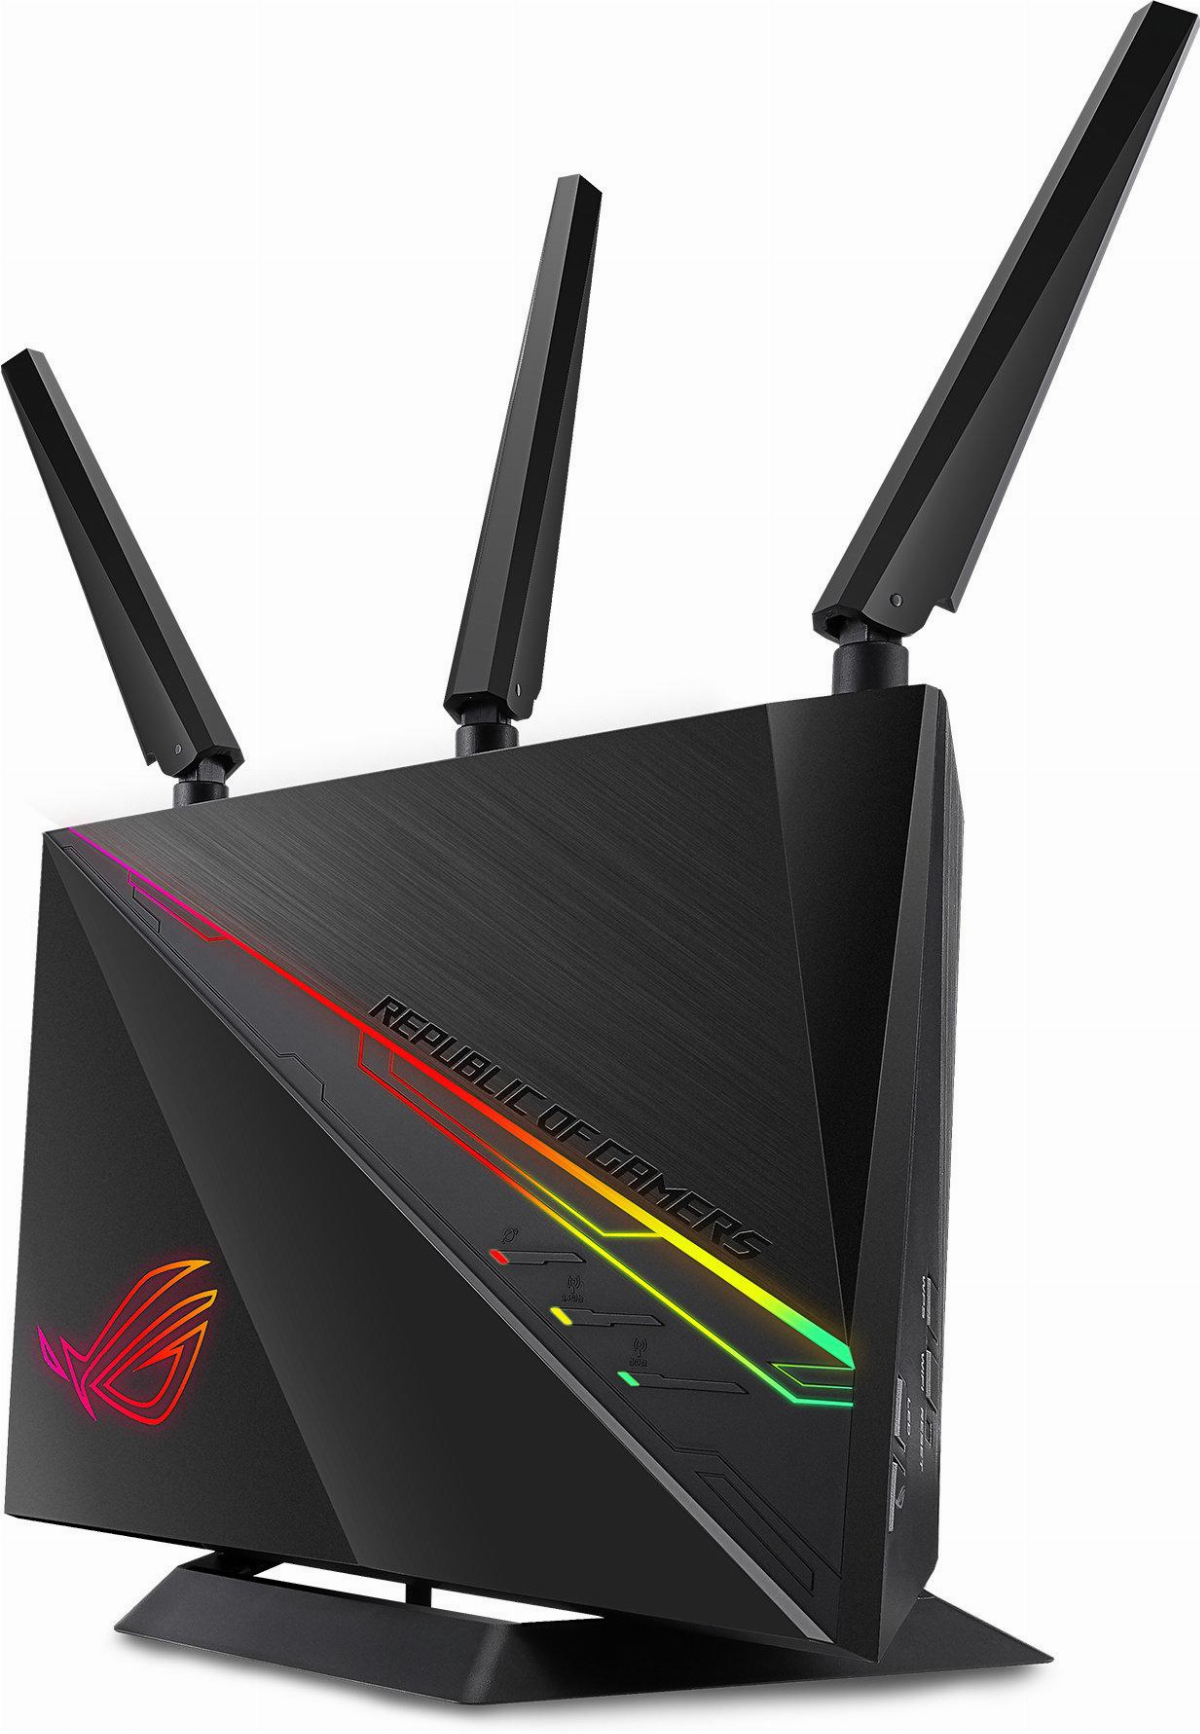 Безжичен рутер ASUS ROG Rapture GT-AC2900 Dual Band, NVIDIA GeForce NOW recommanded, Triple-level game acceleration, AiMesh, Lifetime Free AiProtection Pro Internet Security, Open NAT